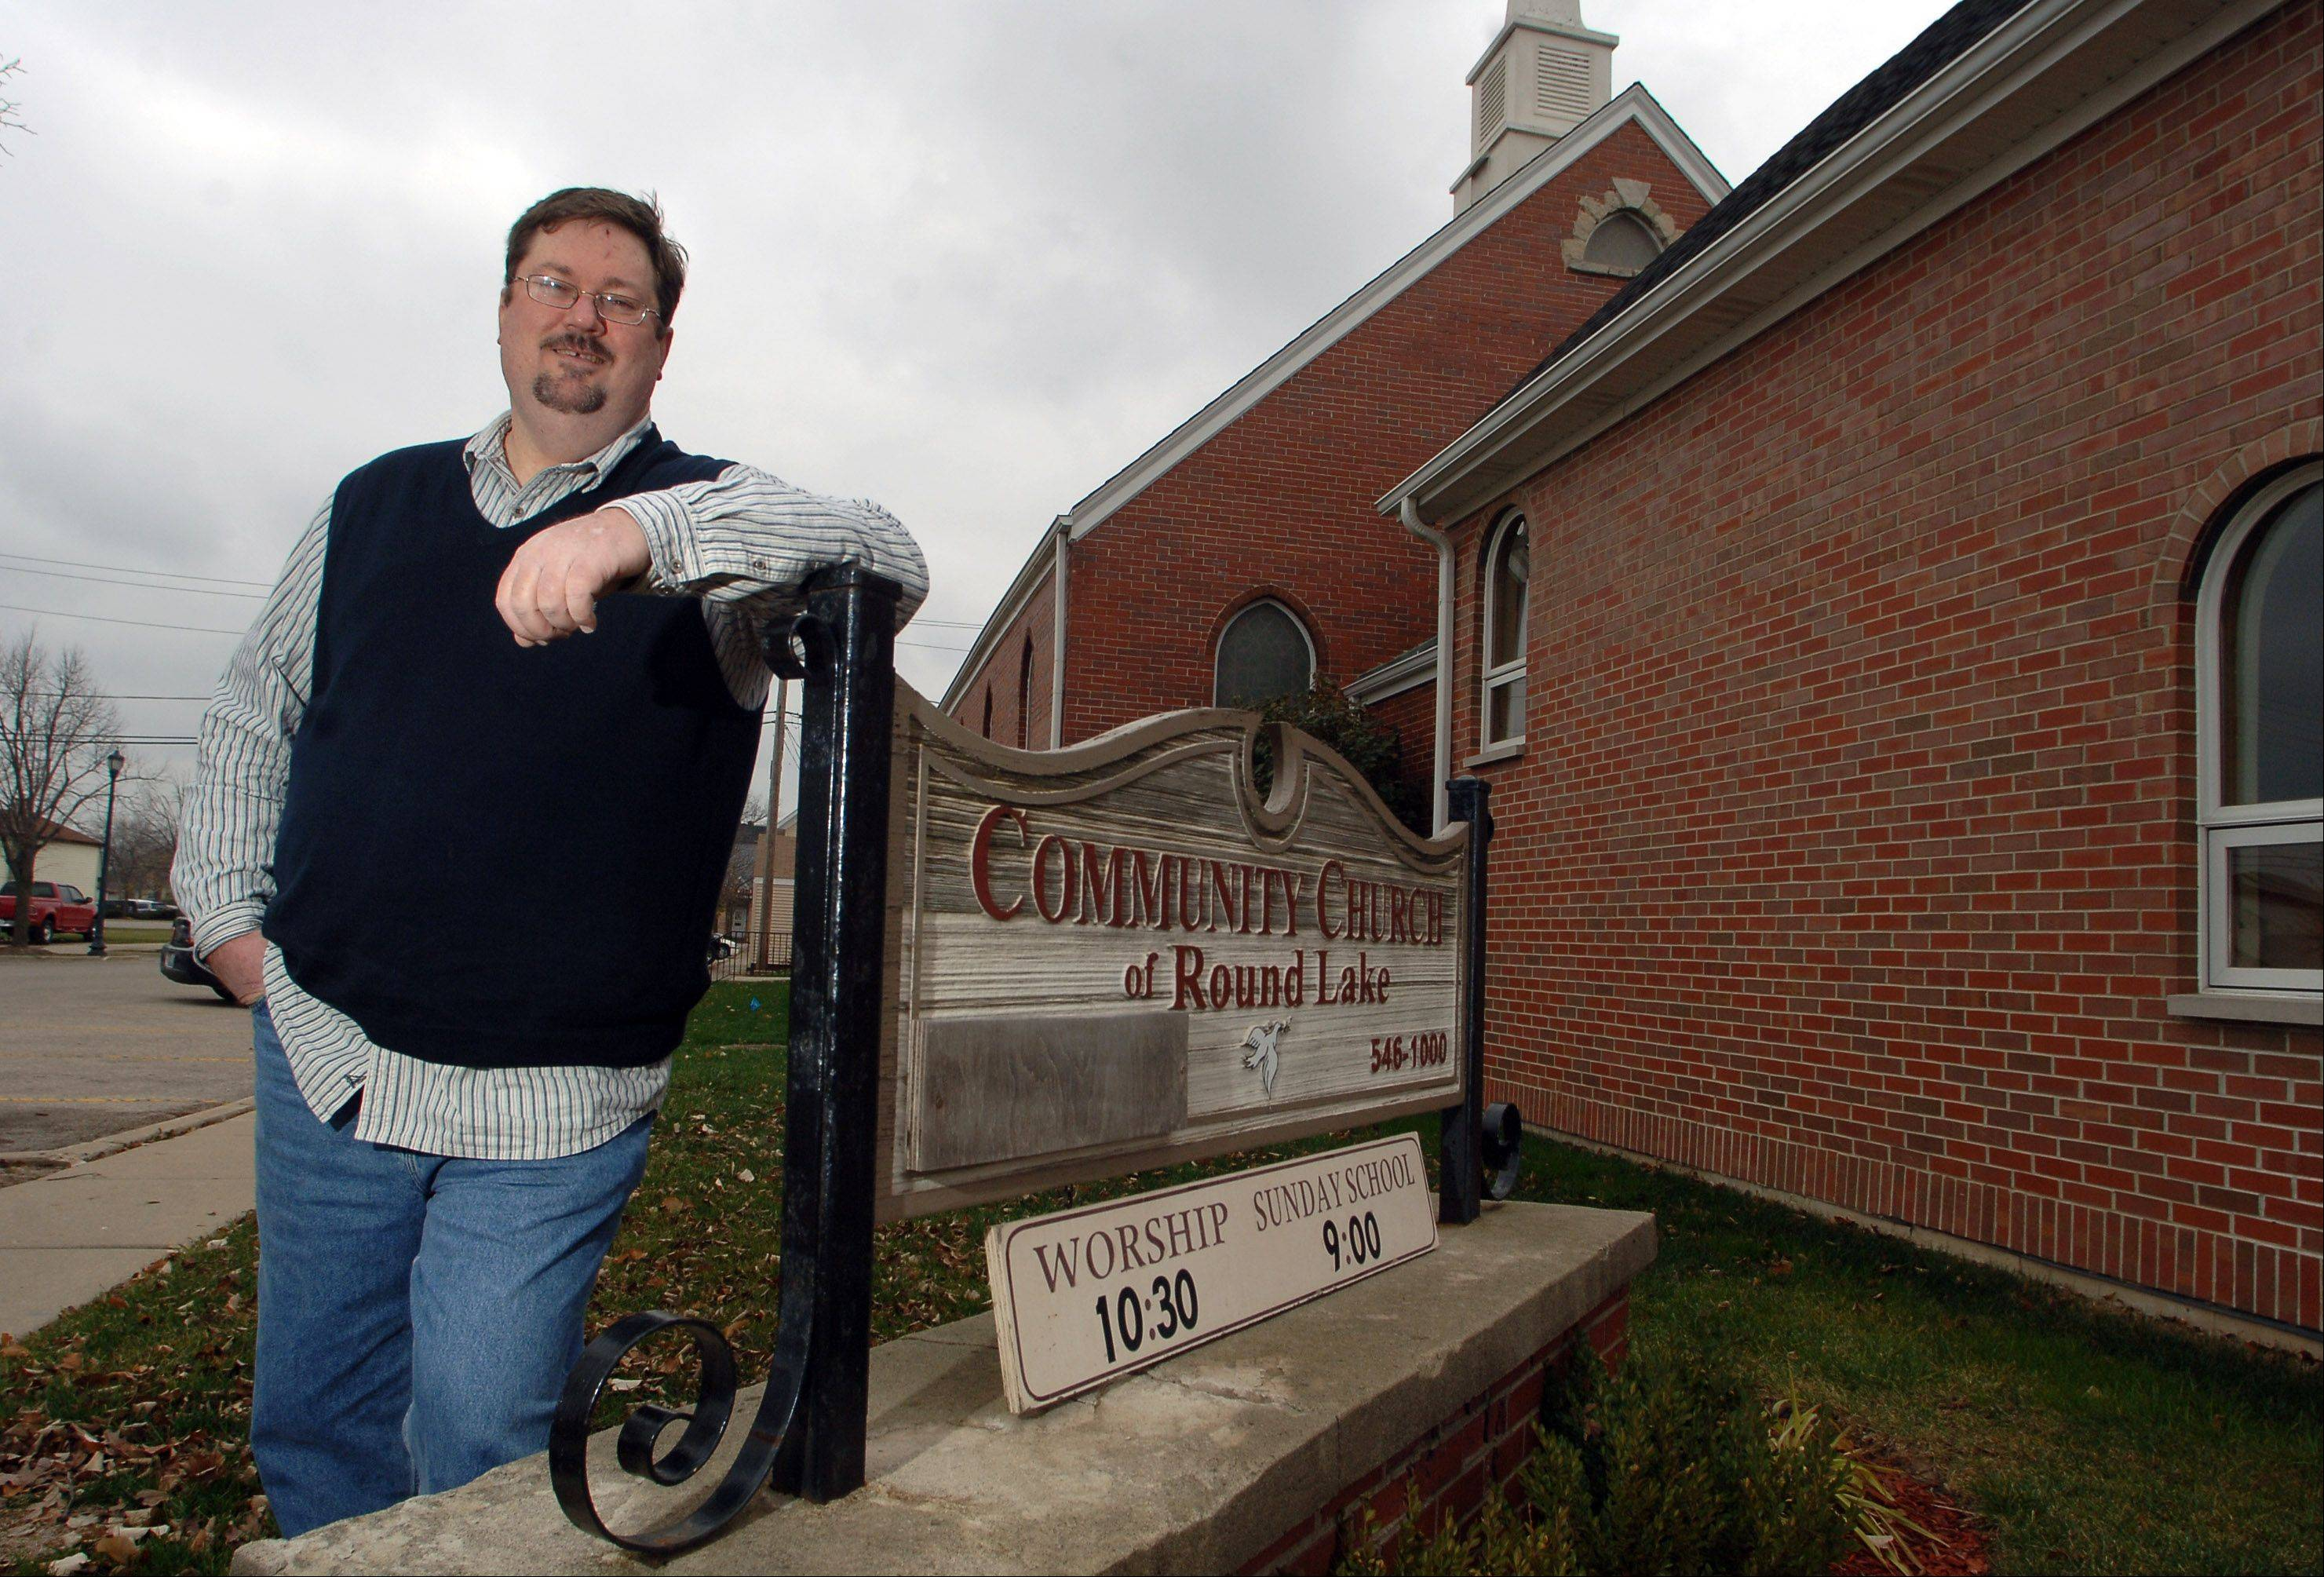 Pastor Mark Drinnenberg will oversee Community Church of Round Lake's 80th anniversary celebration on Sunday.